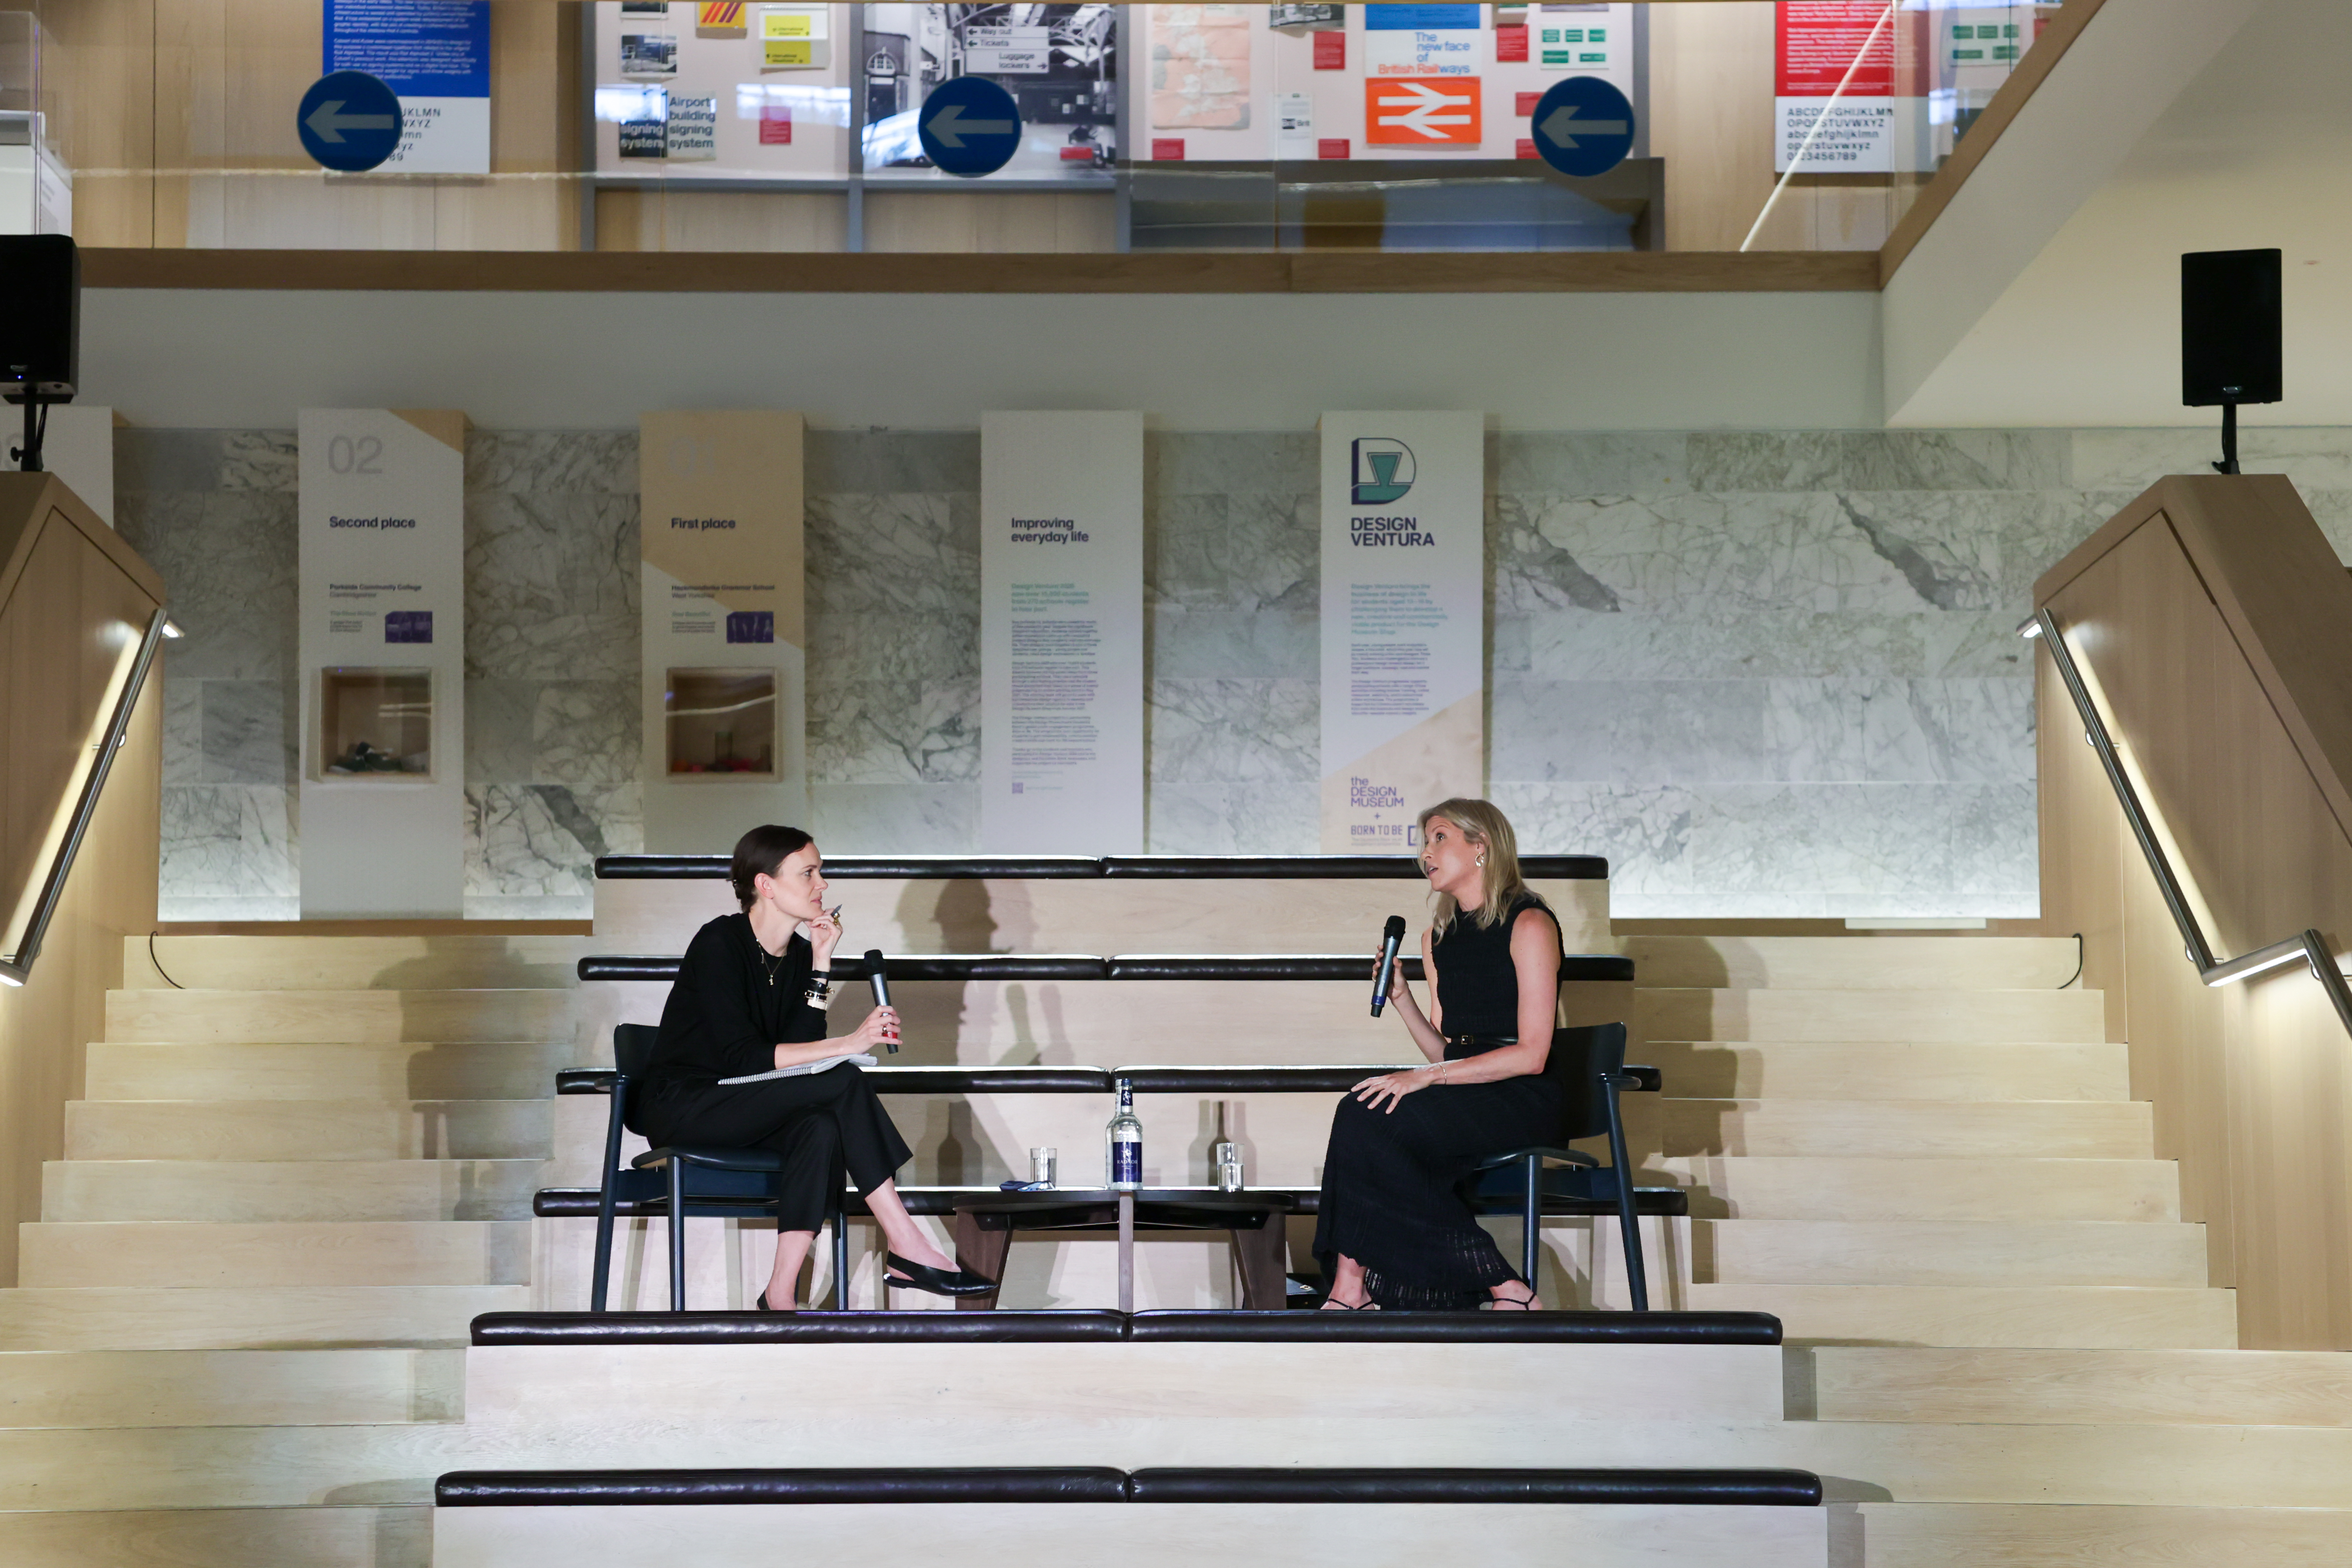 Jo Ellison and Melissa Morris at the Metier x The Design Museum event